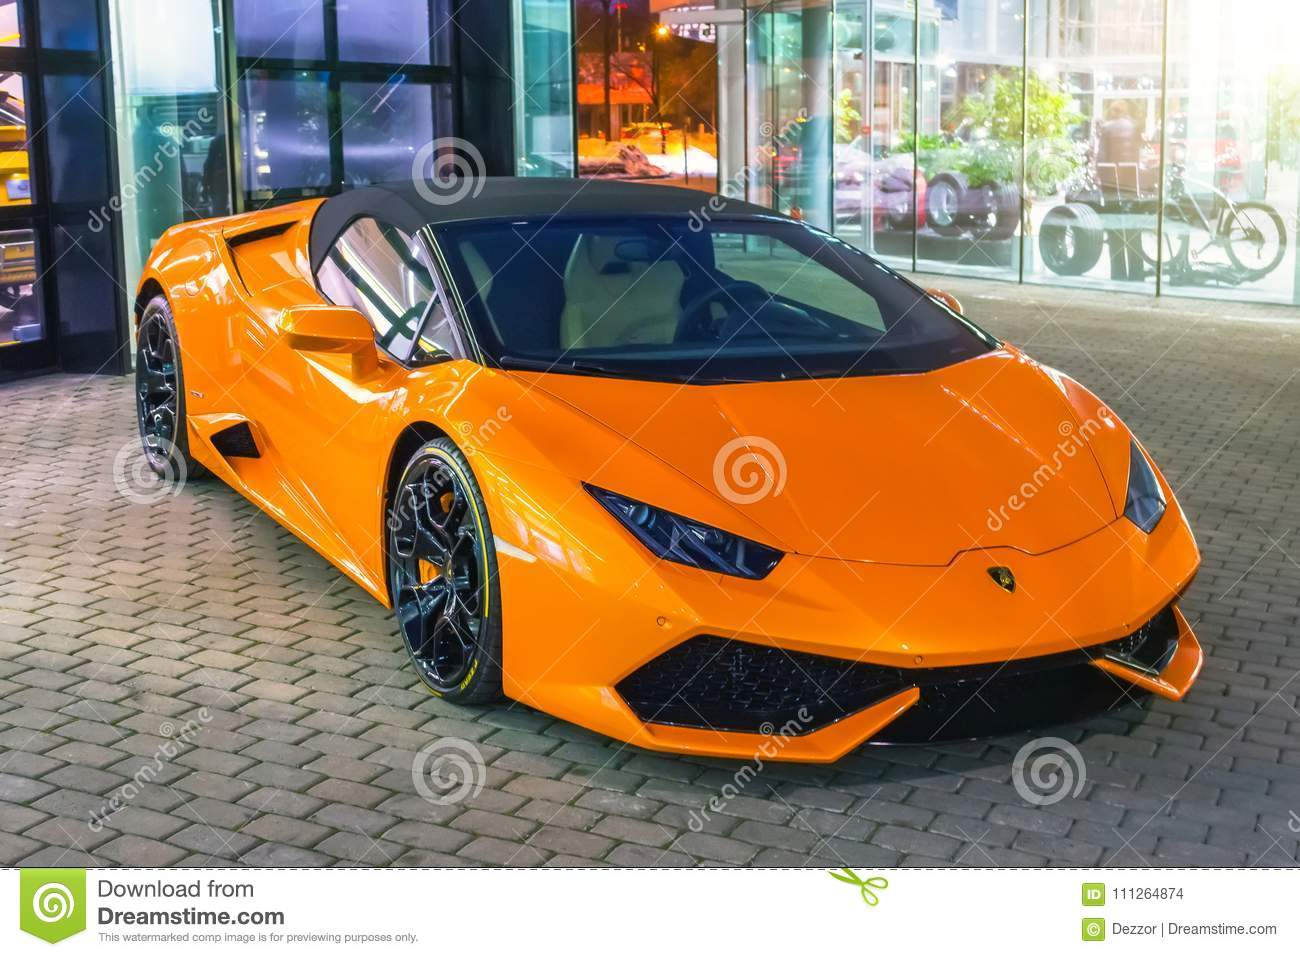 Supercar Lamborghini Aventador Orange Color Parked At The Car